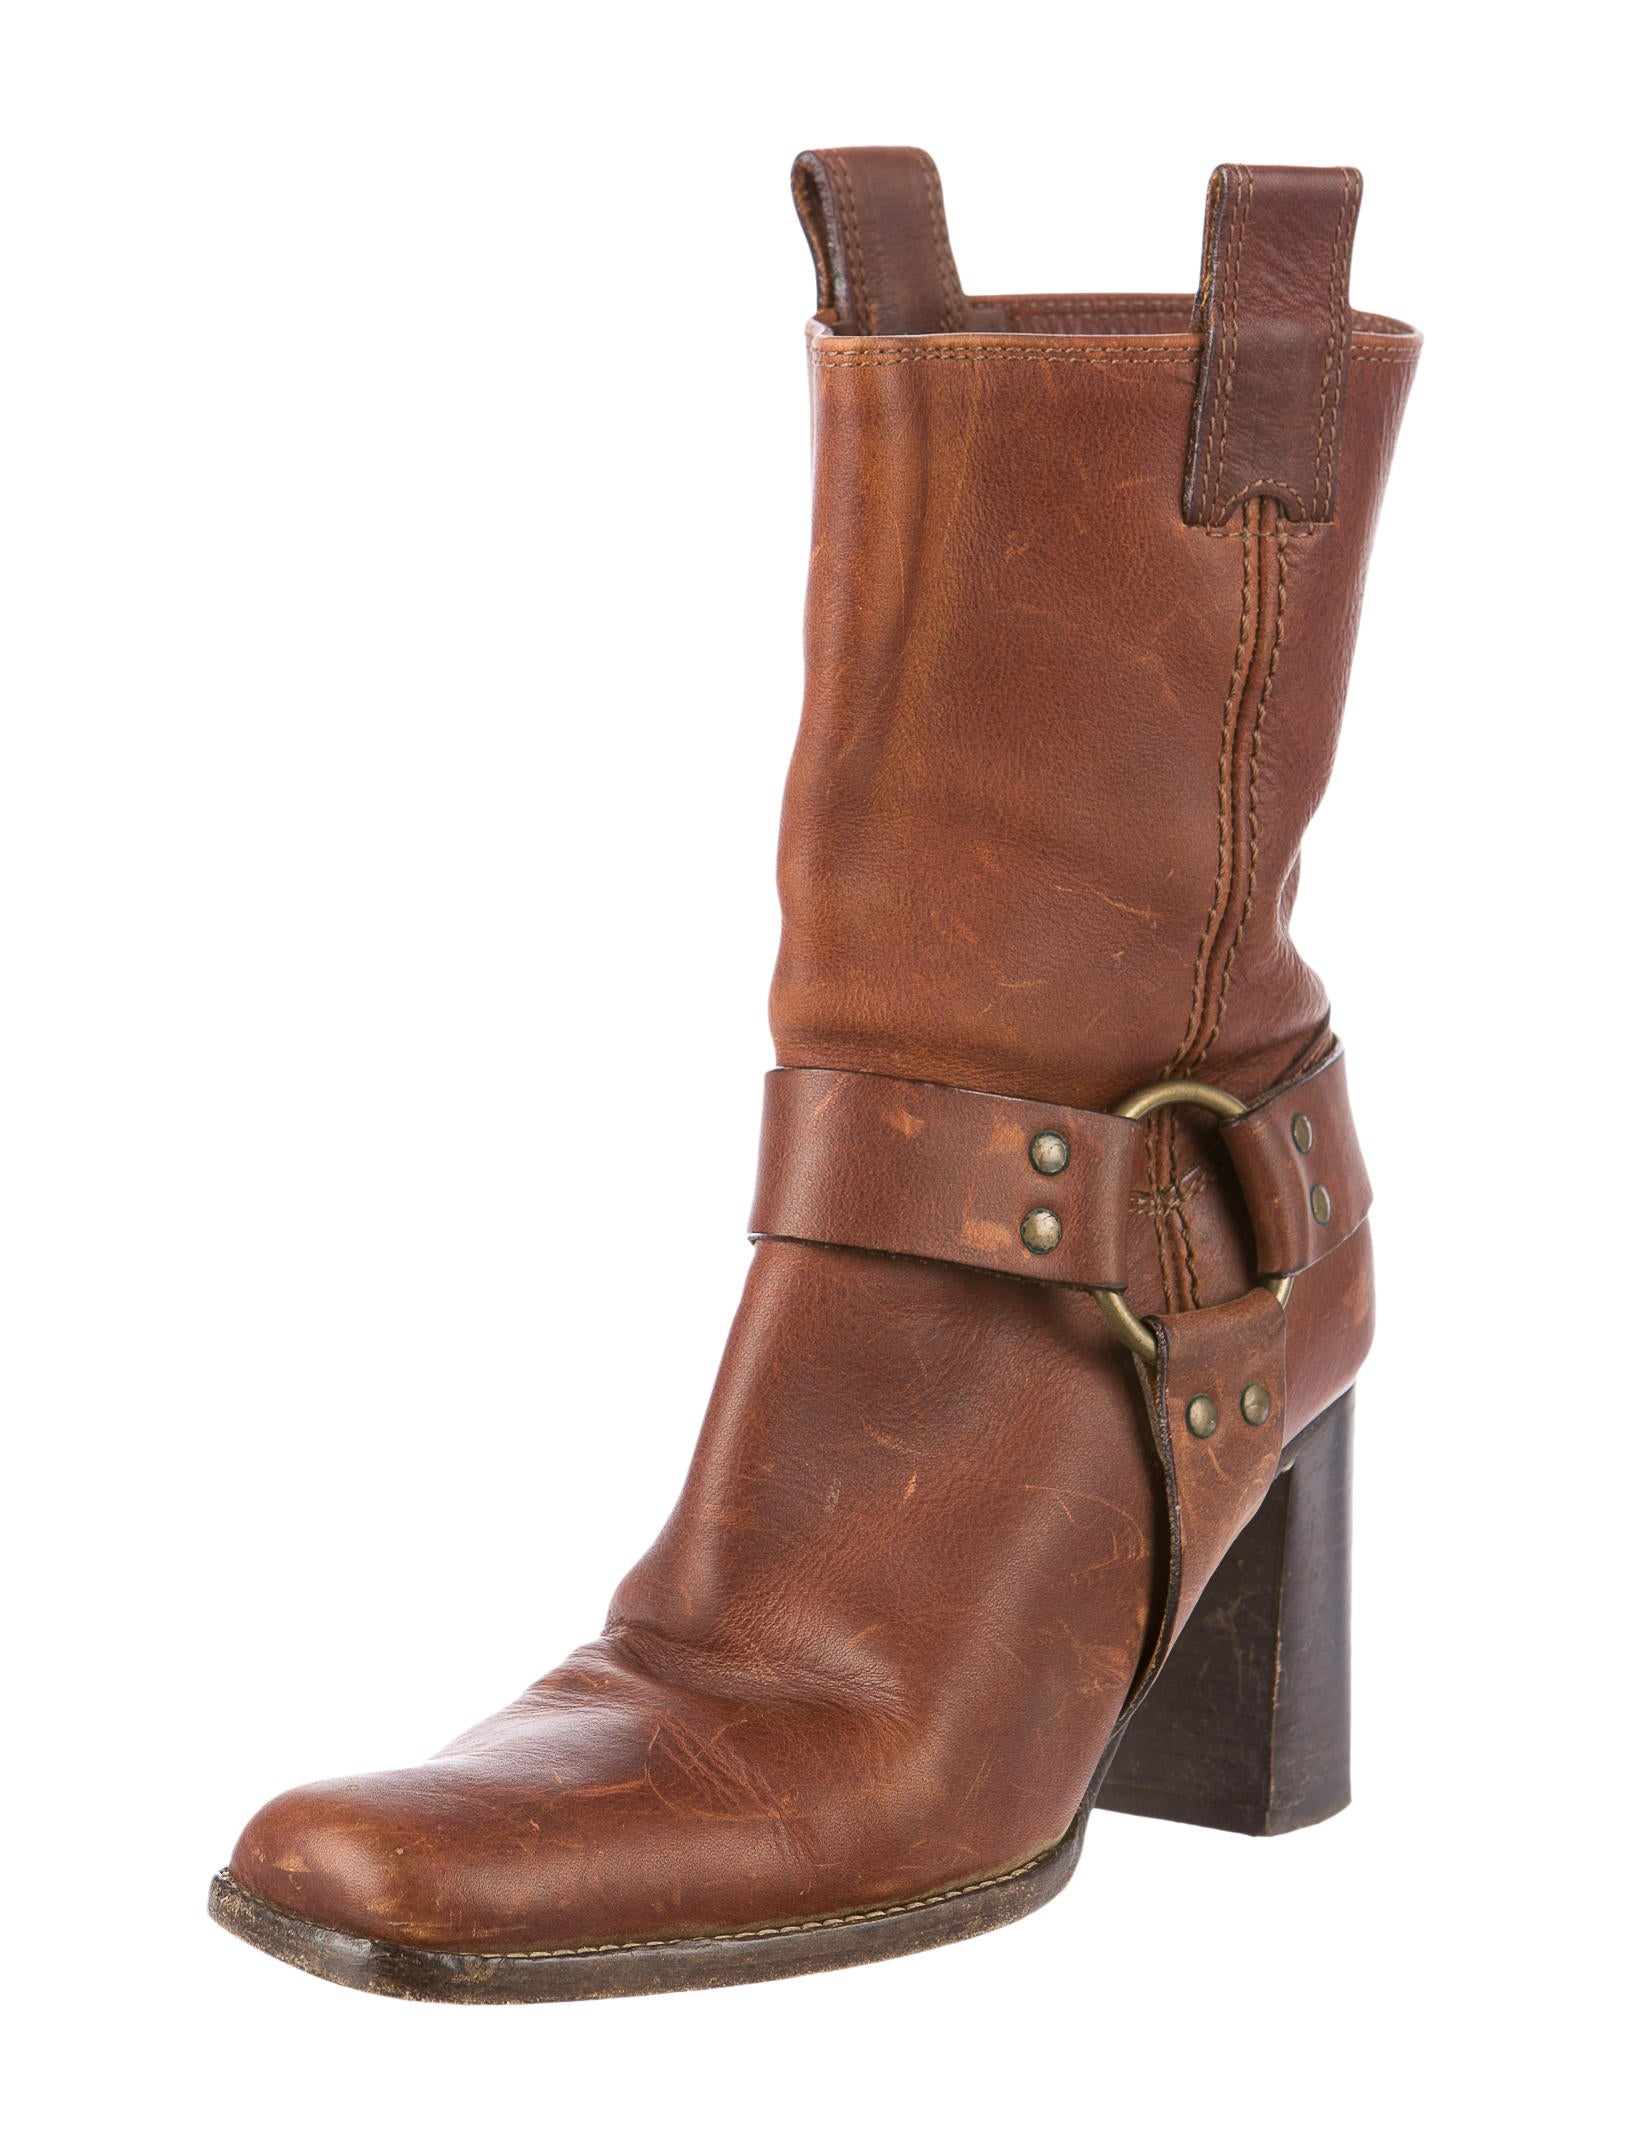 michael kors boots shoes mic26606 the realreal